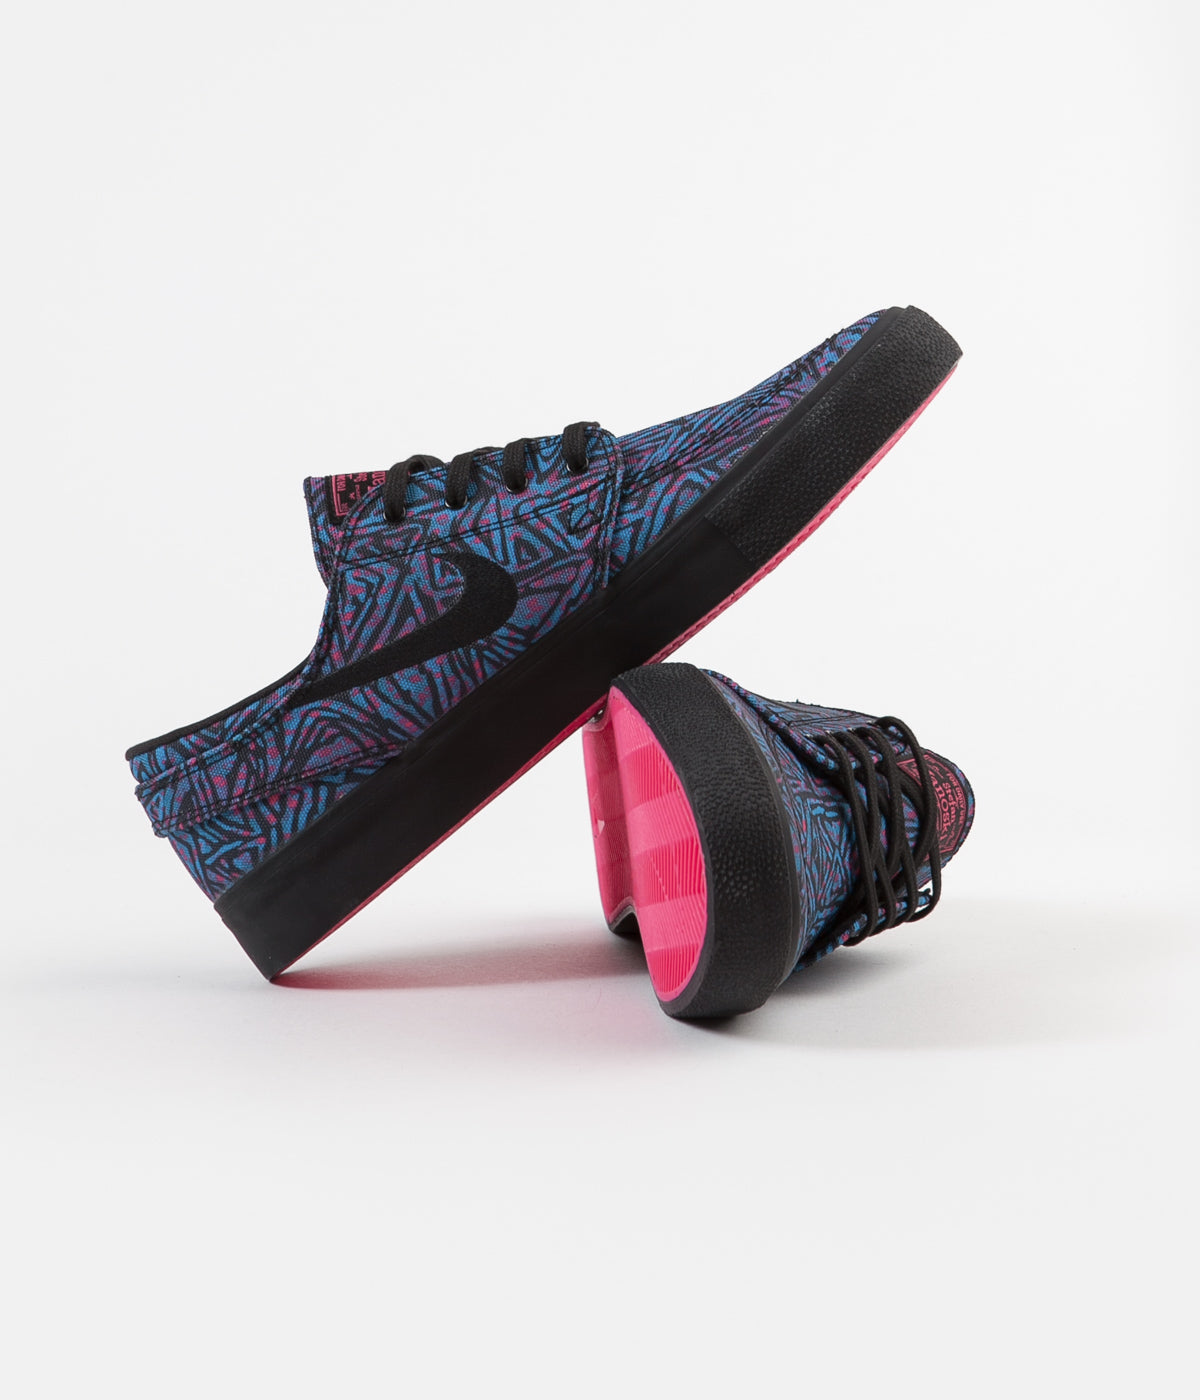 étnico Plausible Ritual  Nike SB Janoski Canvas Remastered Premium Shoes - Watermelon / Black - |  Flatspot